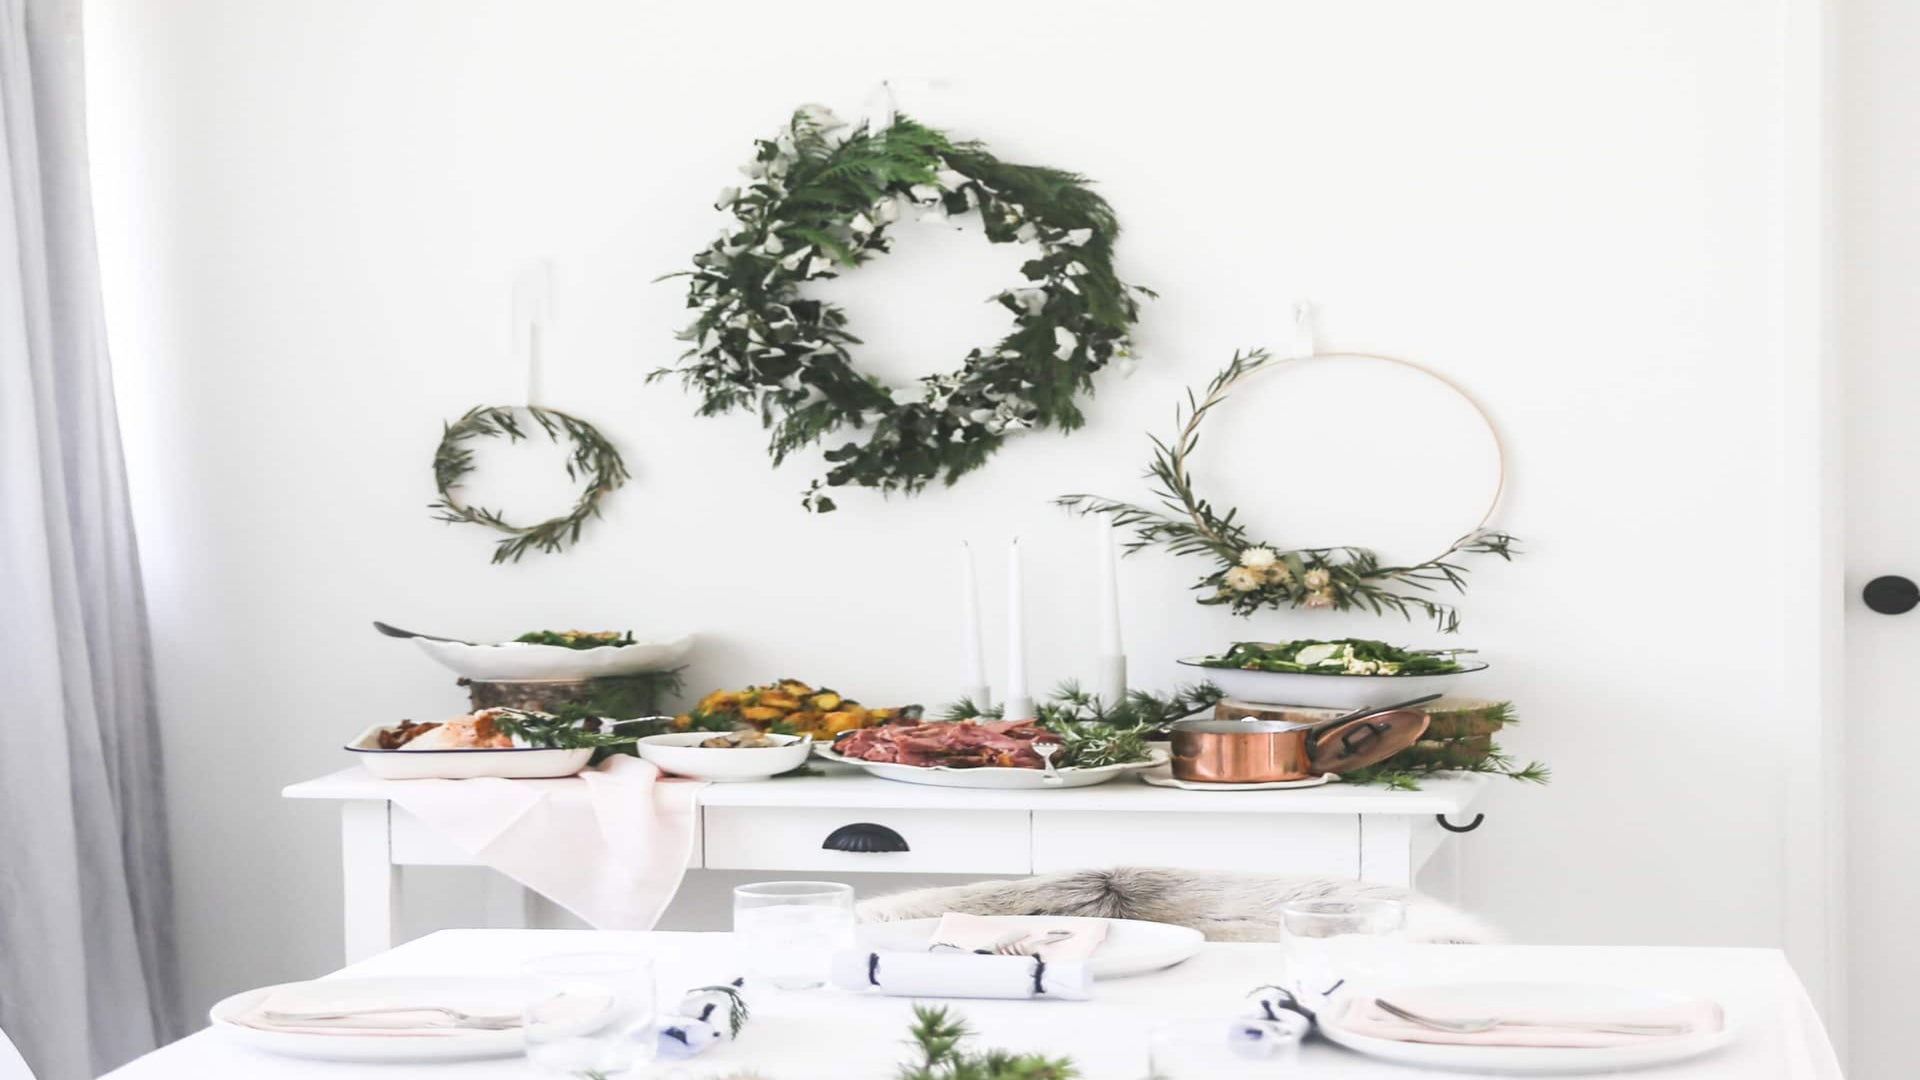 Give Your Home A Holiday Makeover With These Simple DIY Tips